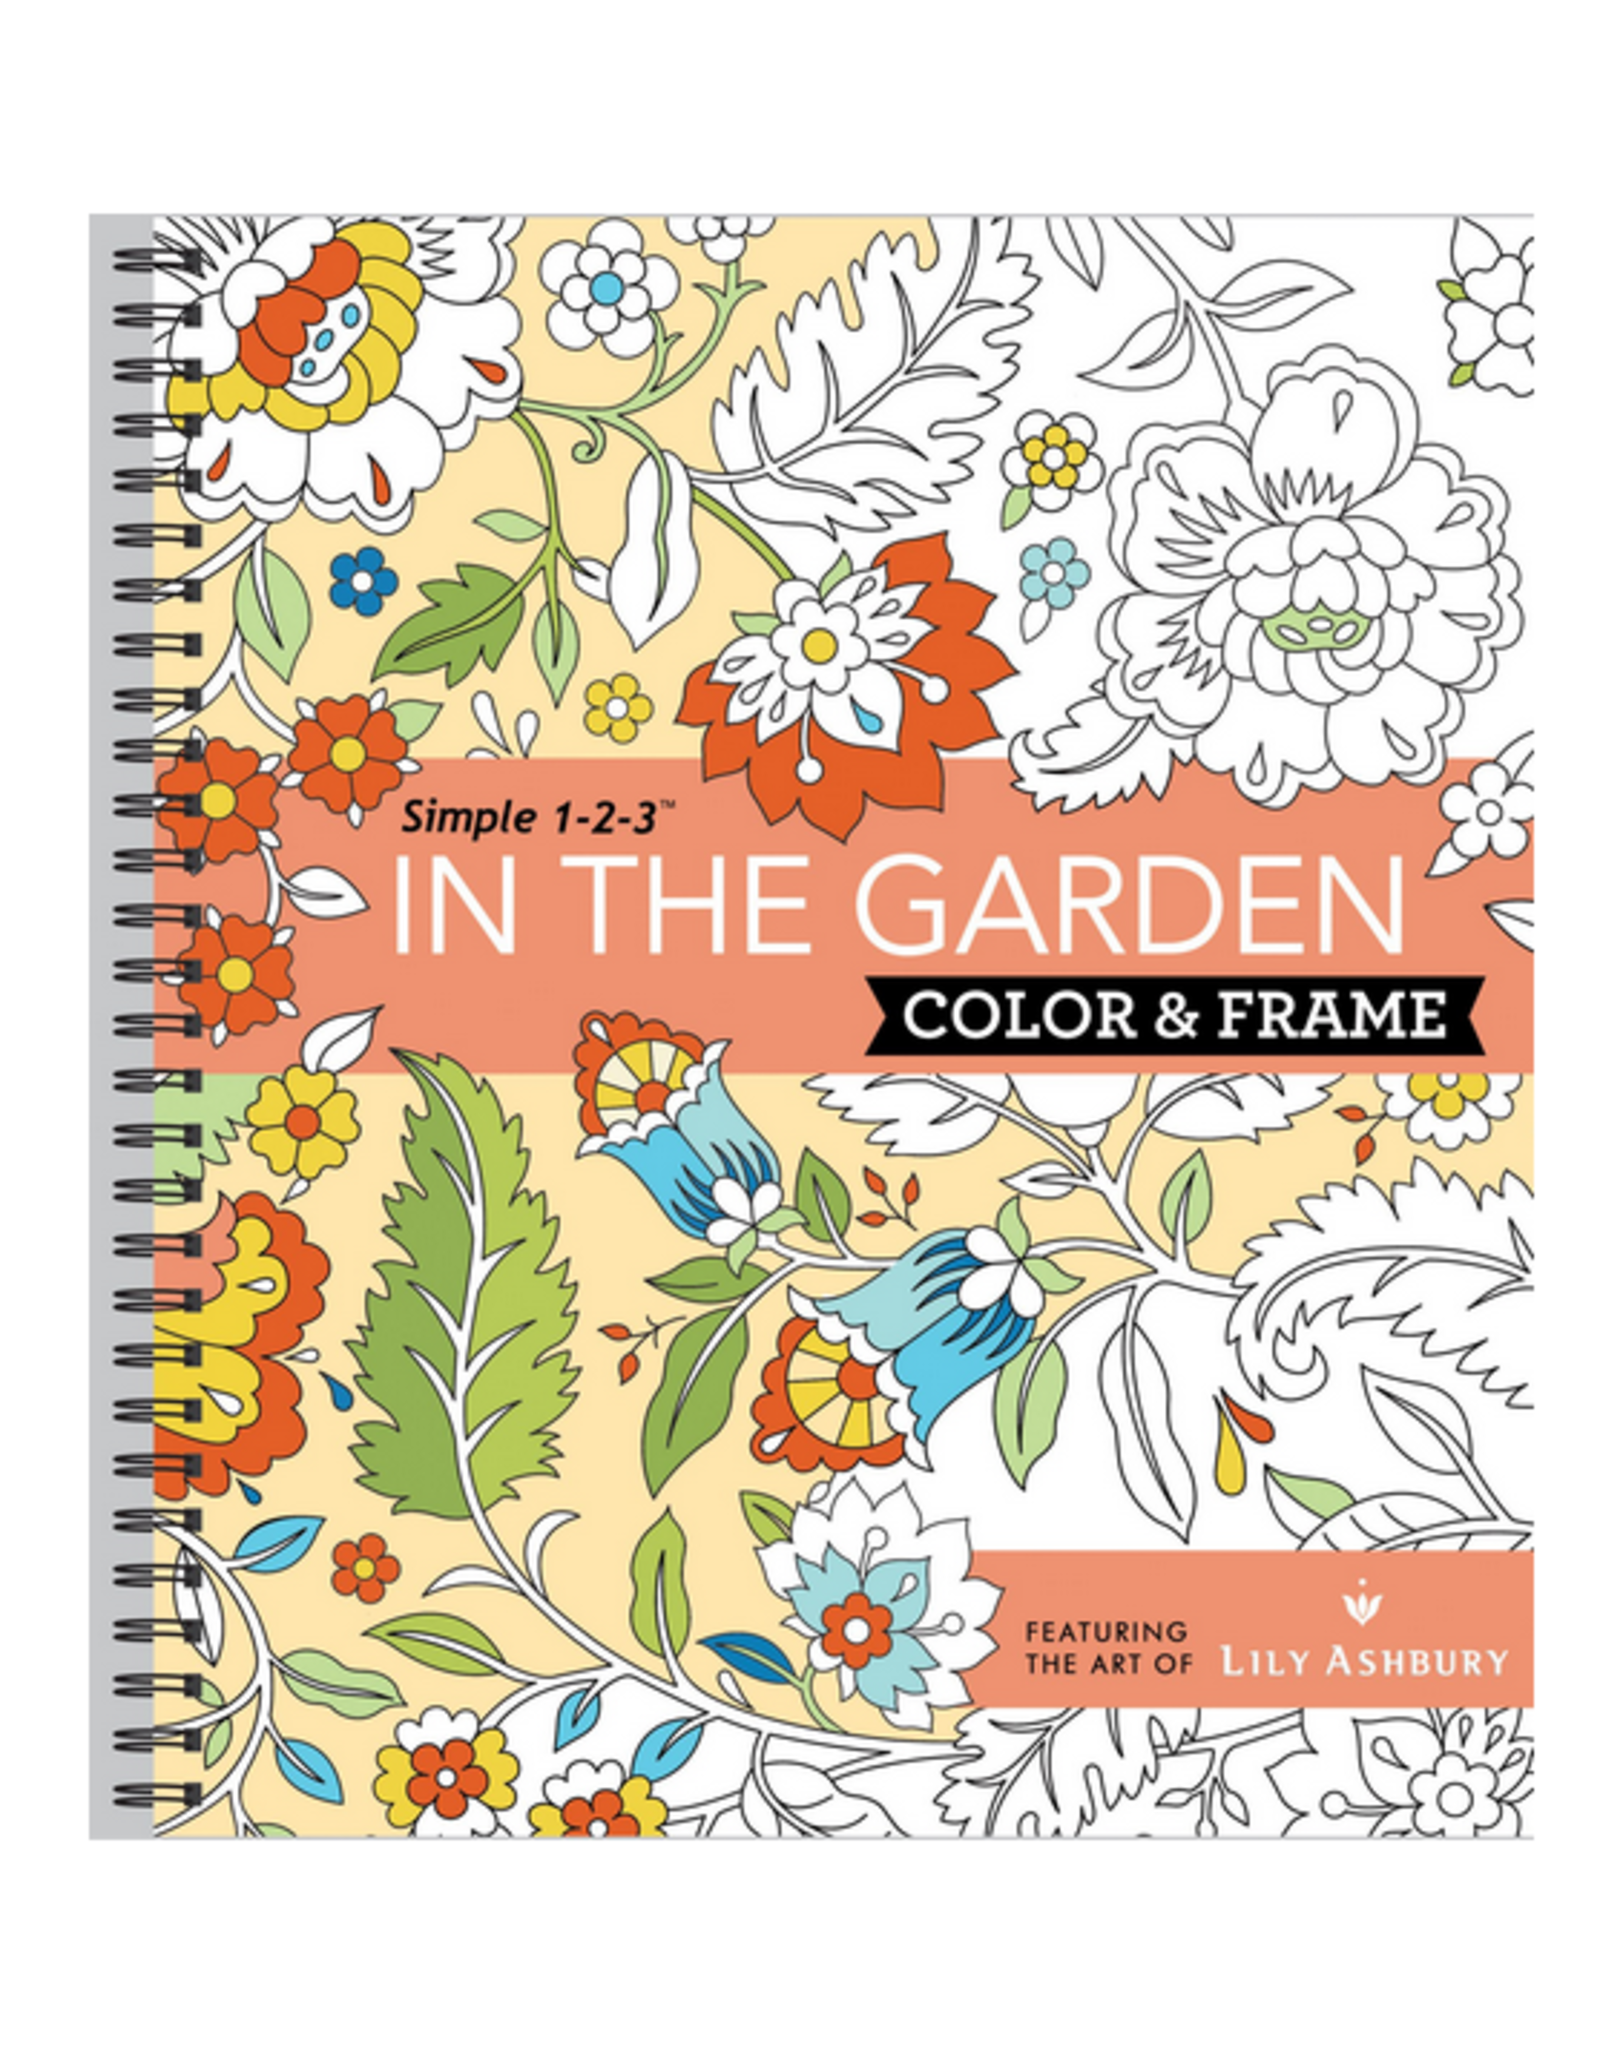 New Seasons Colouring Book for Adults, Colour & Frame In The Garden